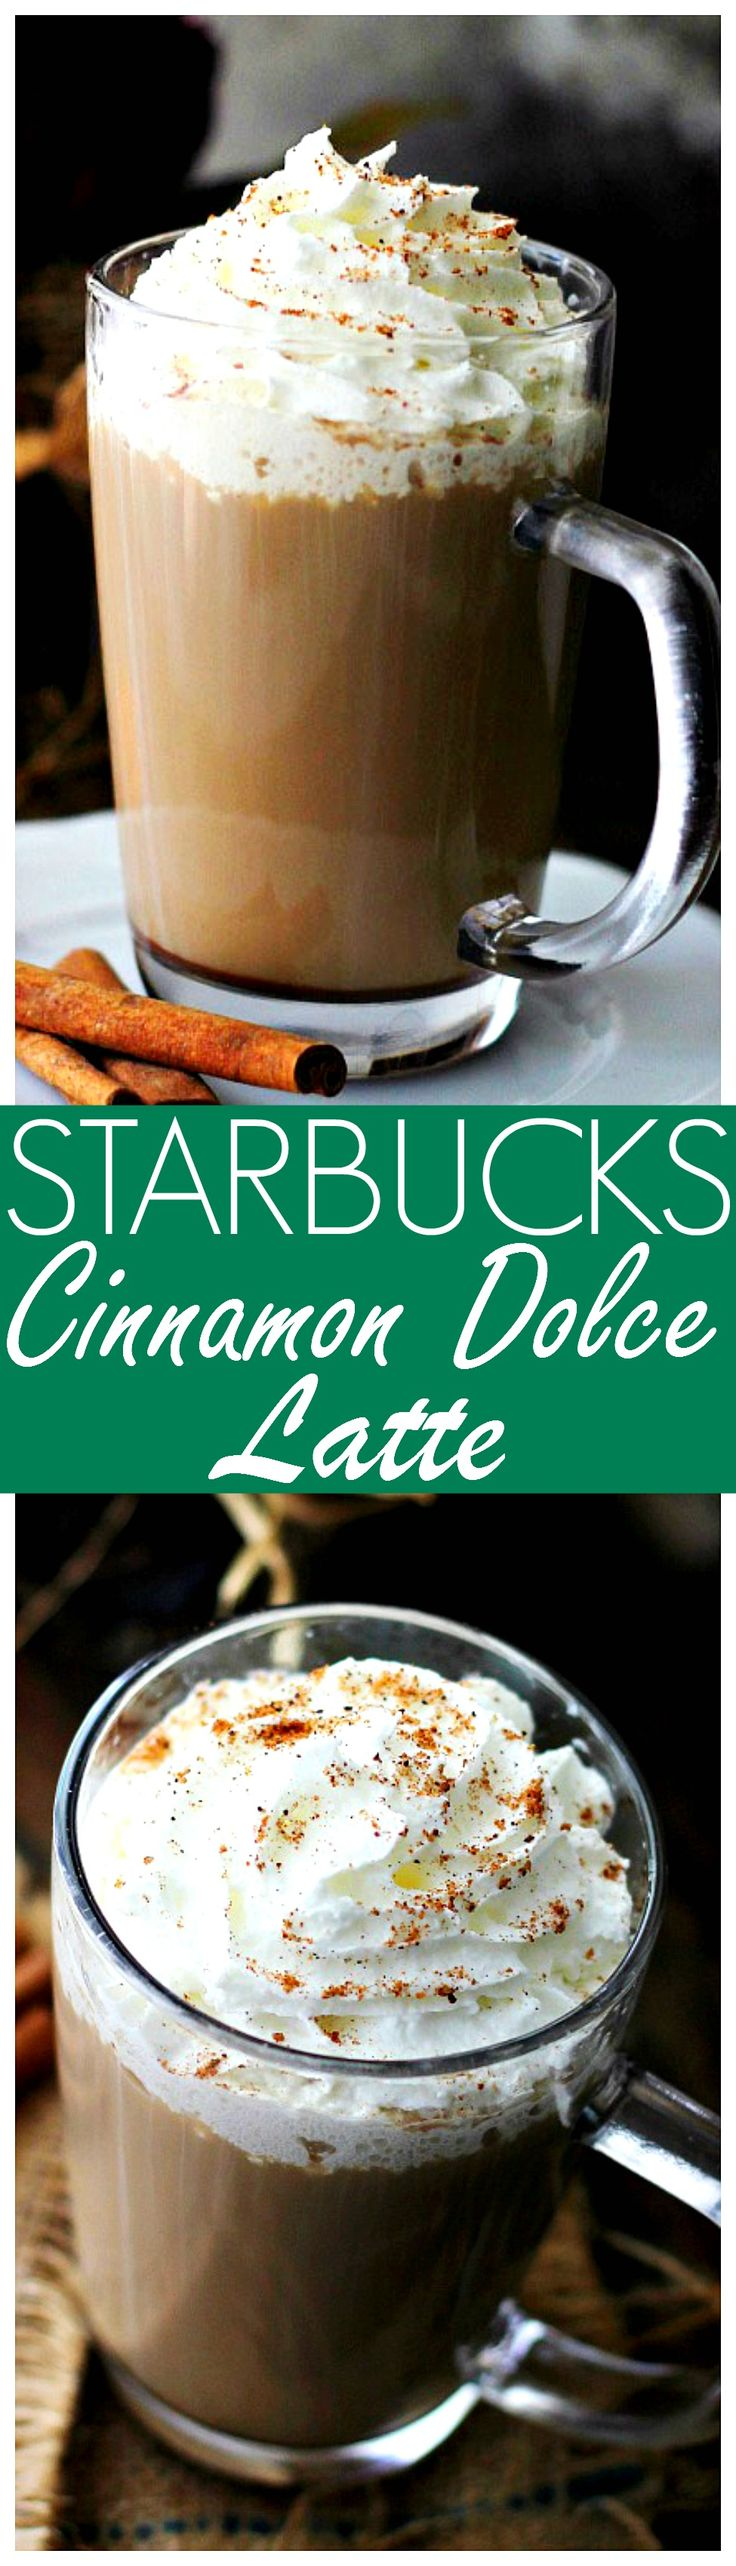 Starbucks Cinnamon Dolce Latte – An exact replica of Starbucks' deliciously sweet, warm and comforting Cinnamon Dolce Latte.